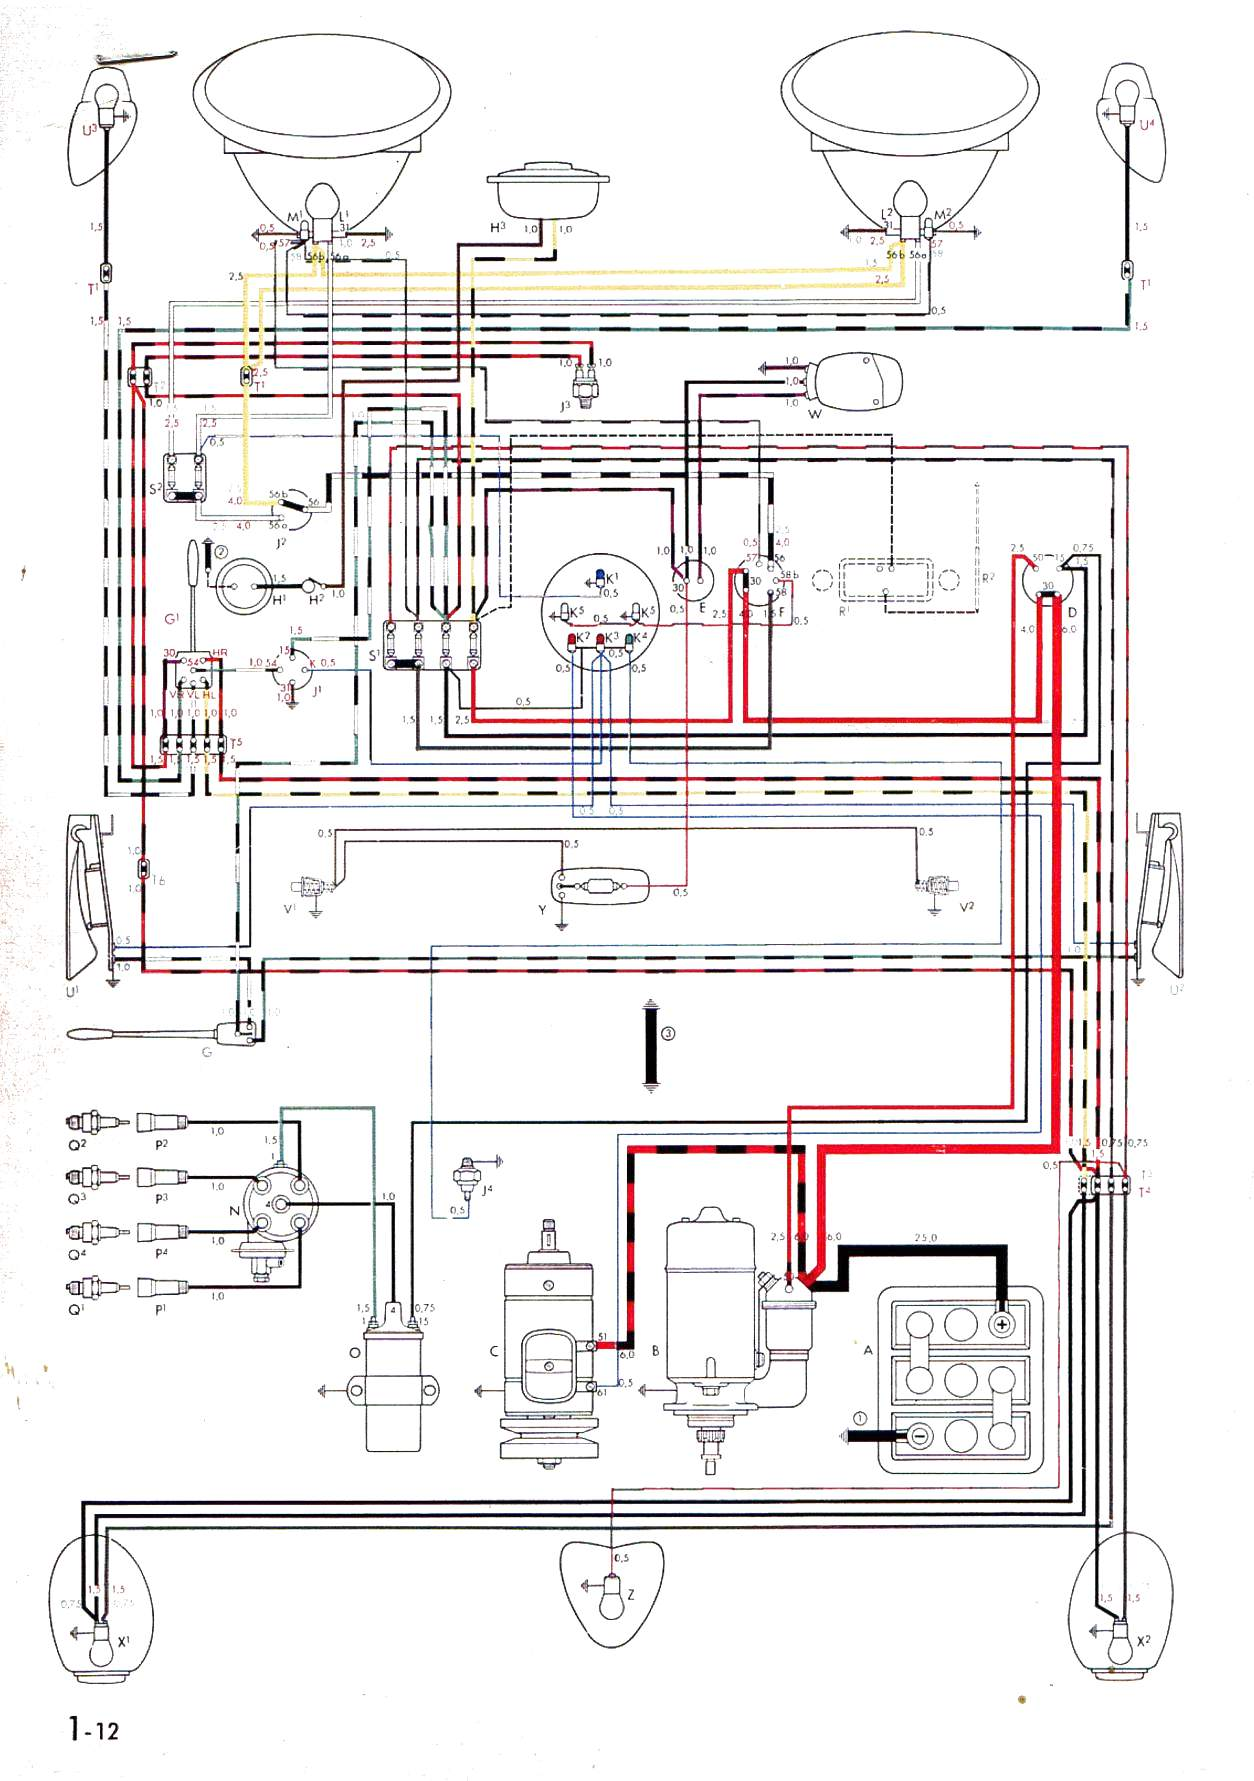 bug 55 57 vw wiring diagrams 1978 vw super beetle wiring diagram at soozxer.org